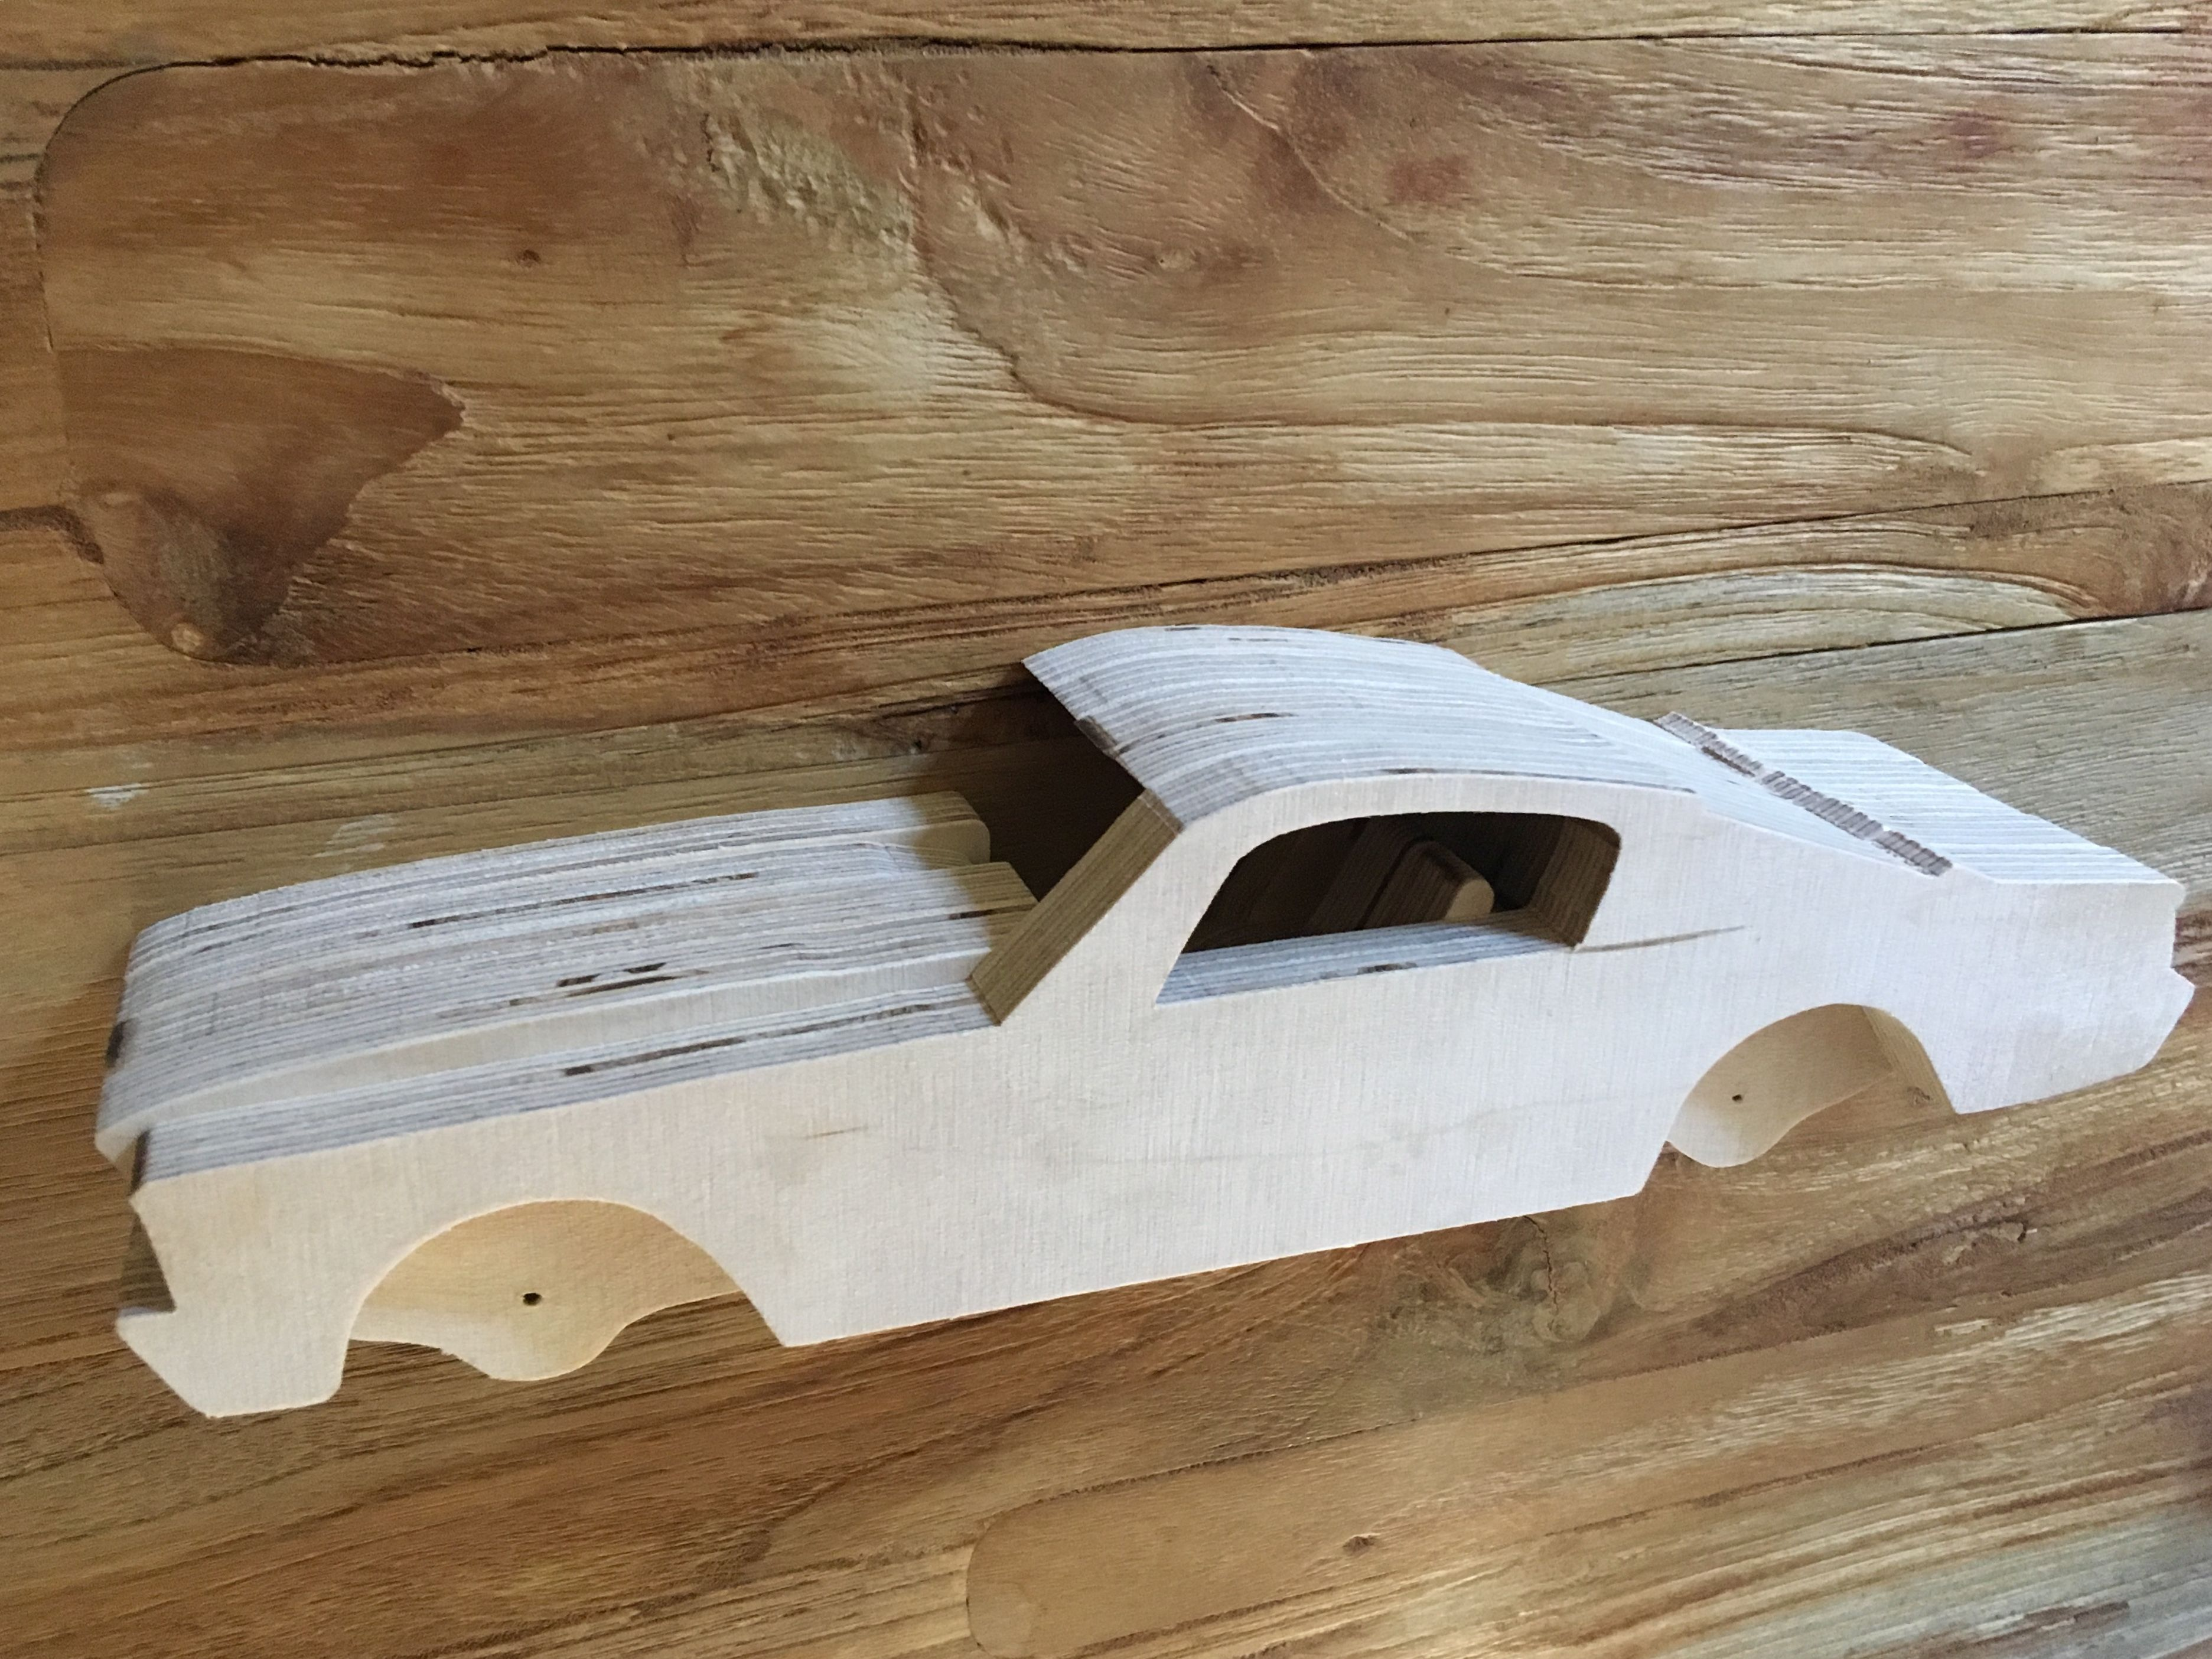 my way toy design – scroll saw plans | projects | wooden